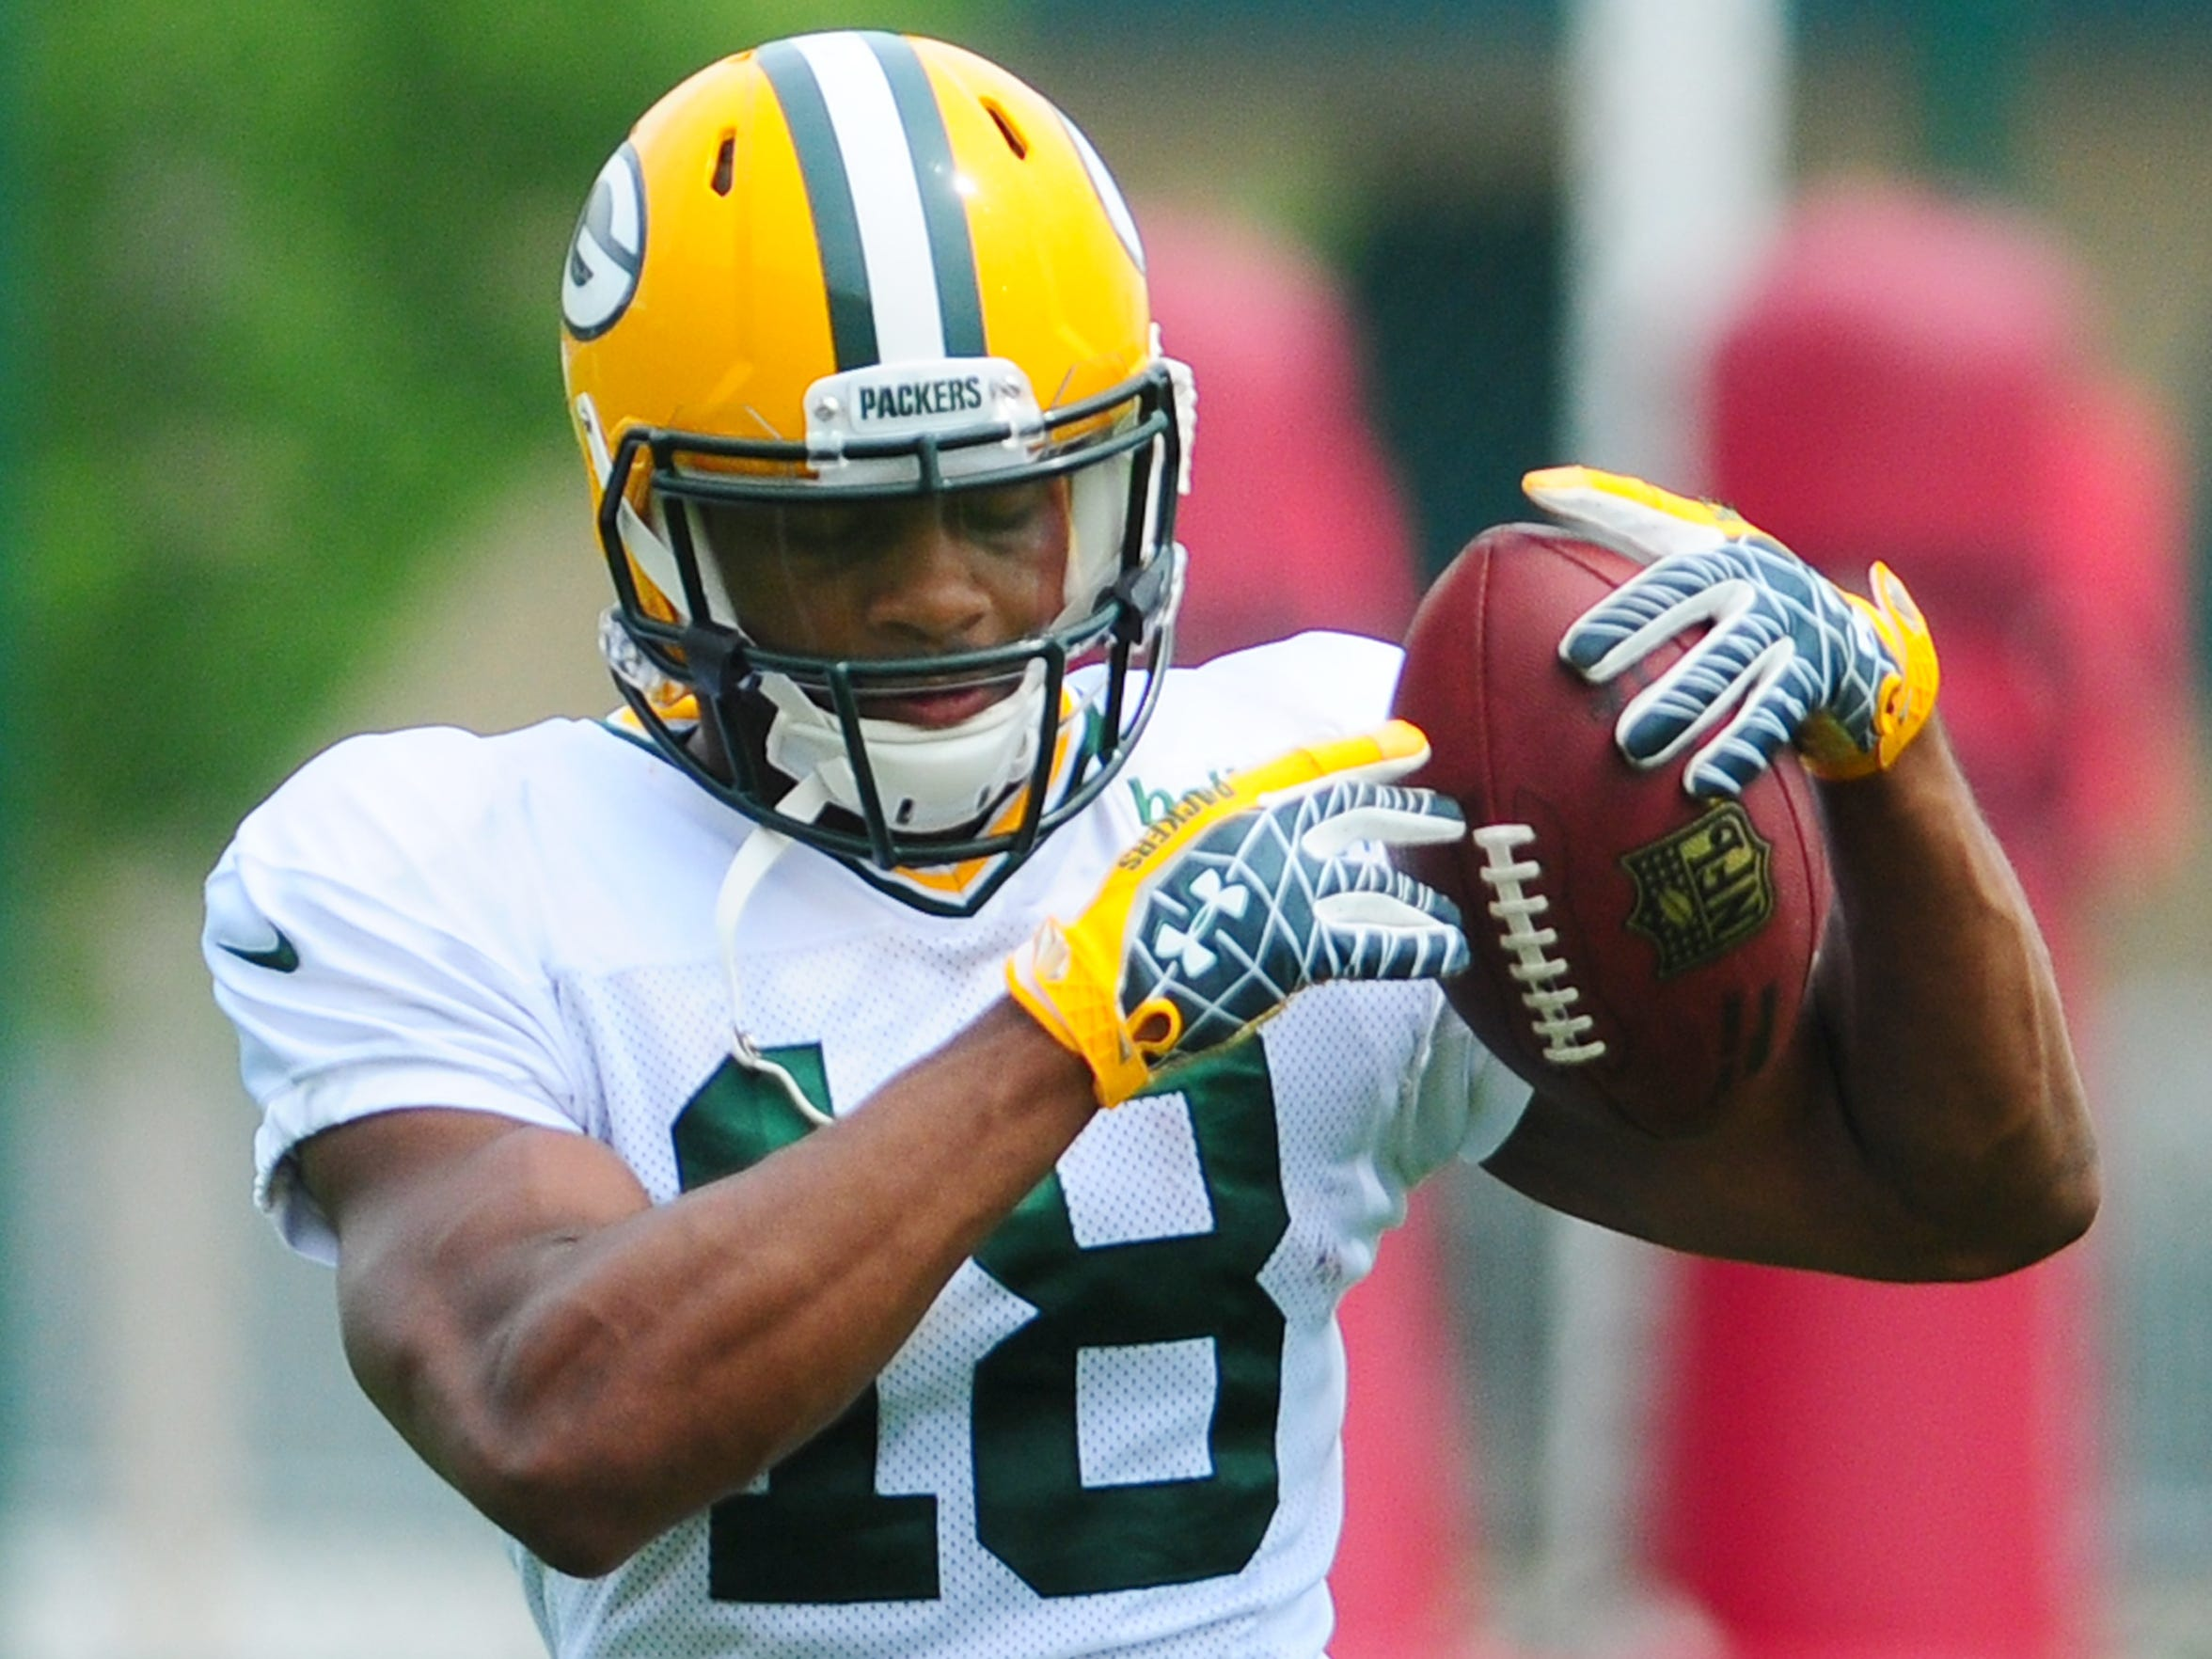 The Green Bay Packers training camp begins July 30.